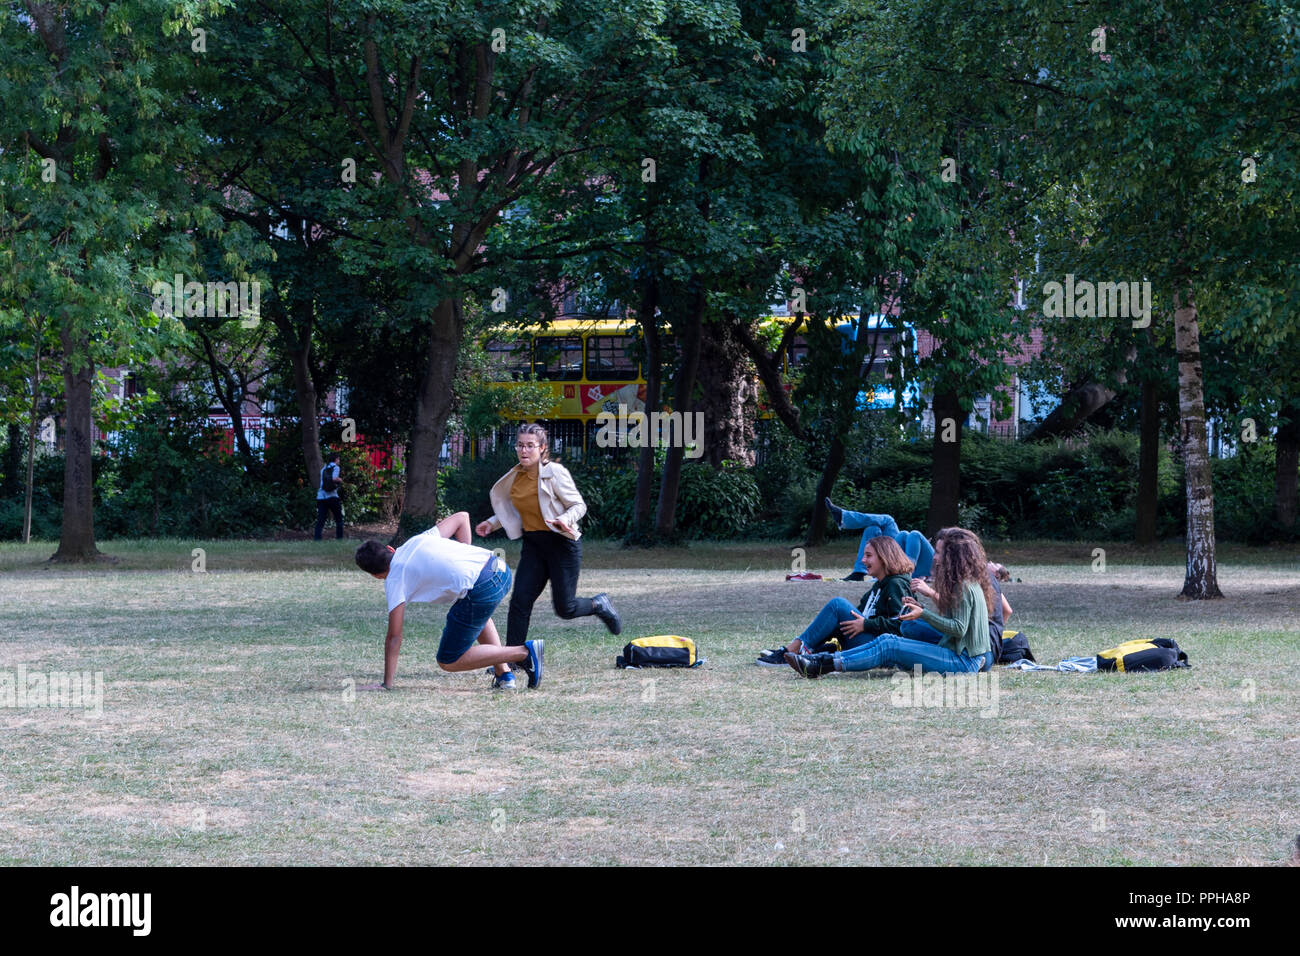 Dublin, Ireland -- July 9, 2018.  Students frolic in a Dublin park on a hot summer day. - Stock Image